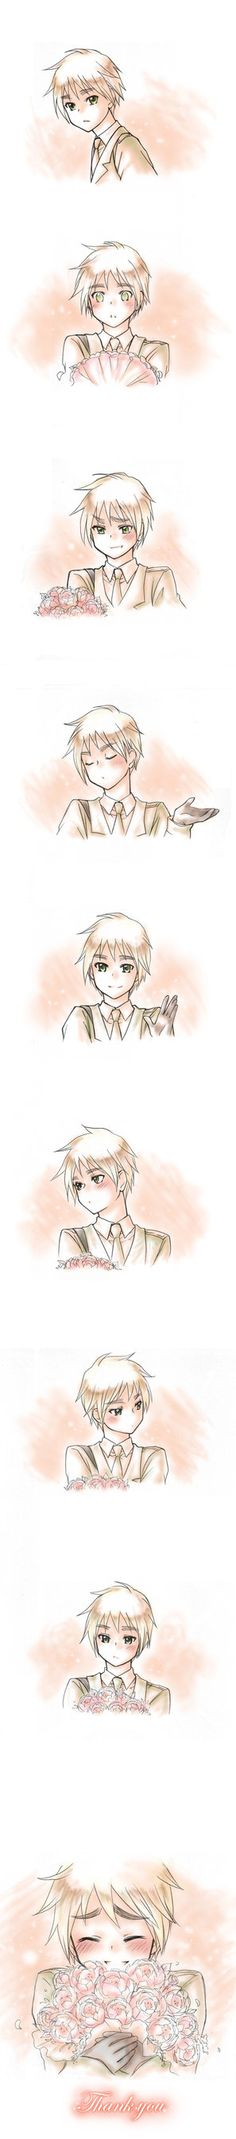 aph england 'thank you' by mikitaka SEE OTHER PICS ON PAGE